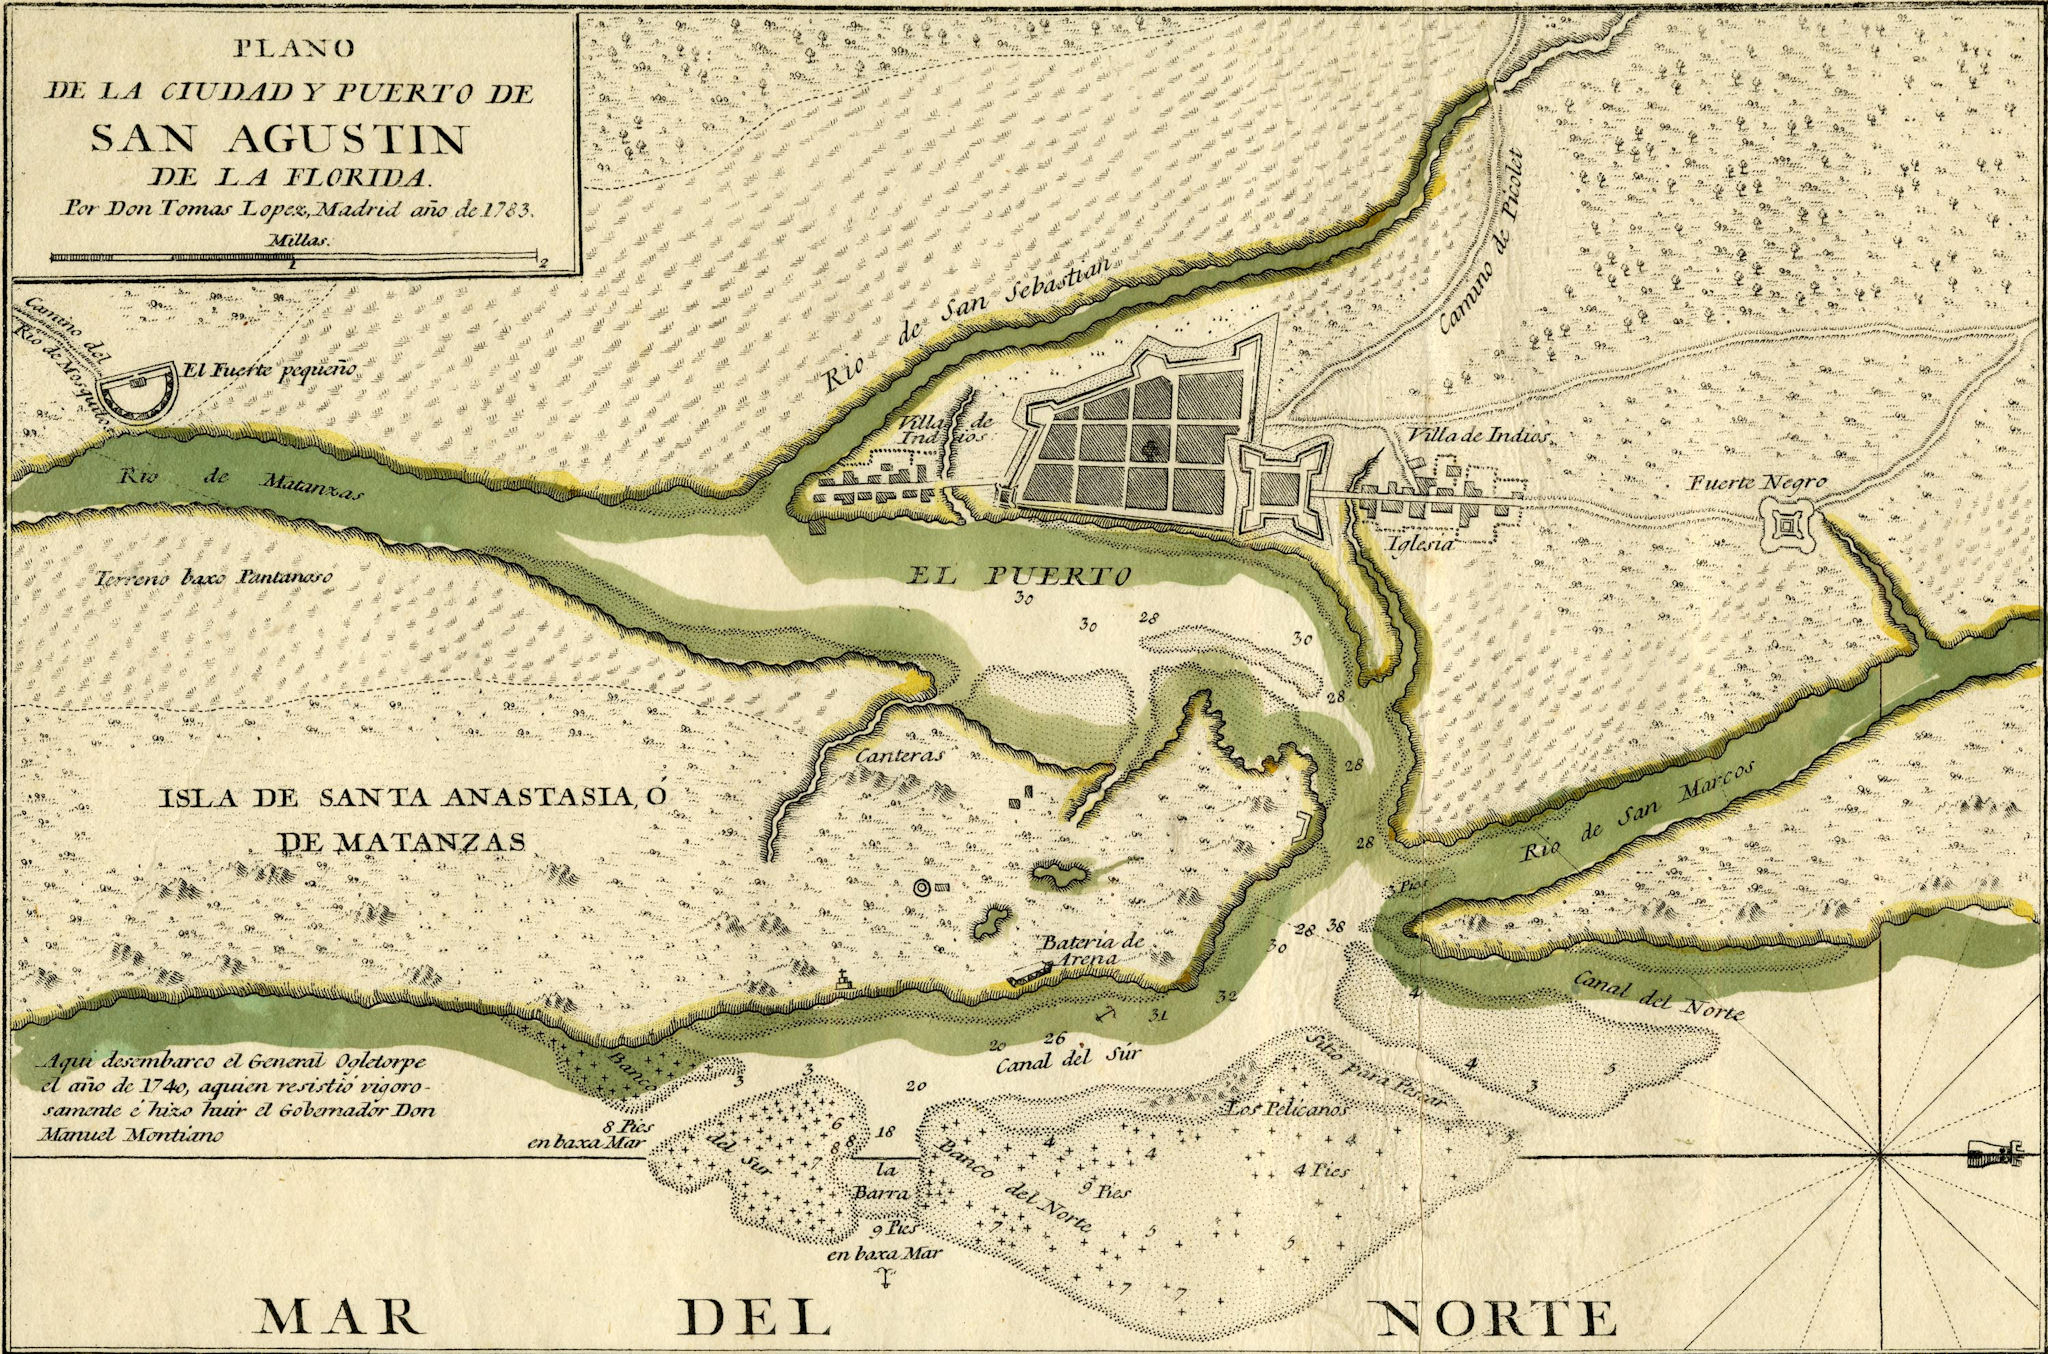 st augustine historical map 1782